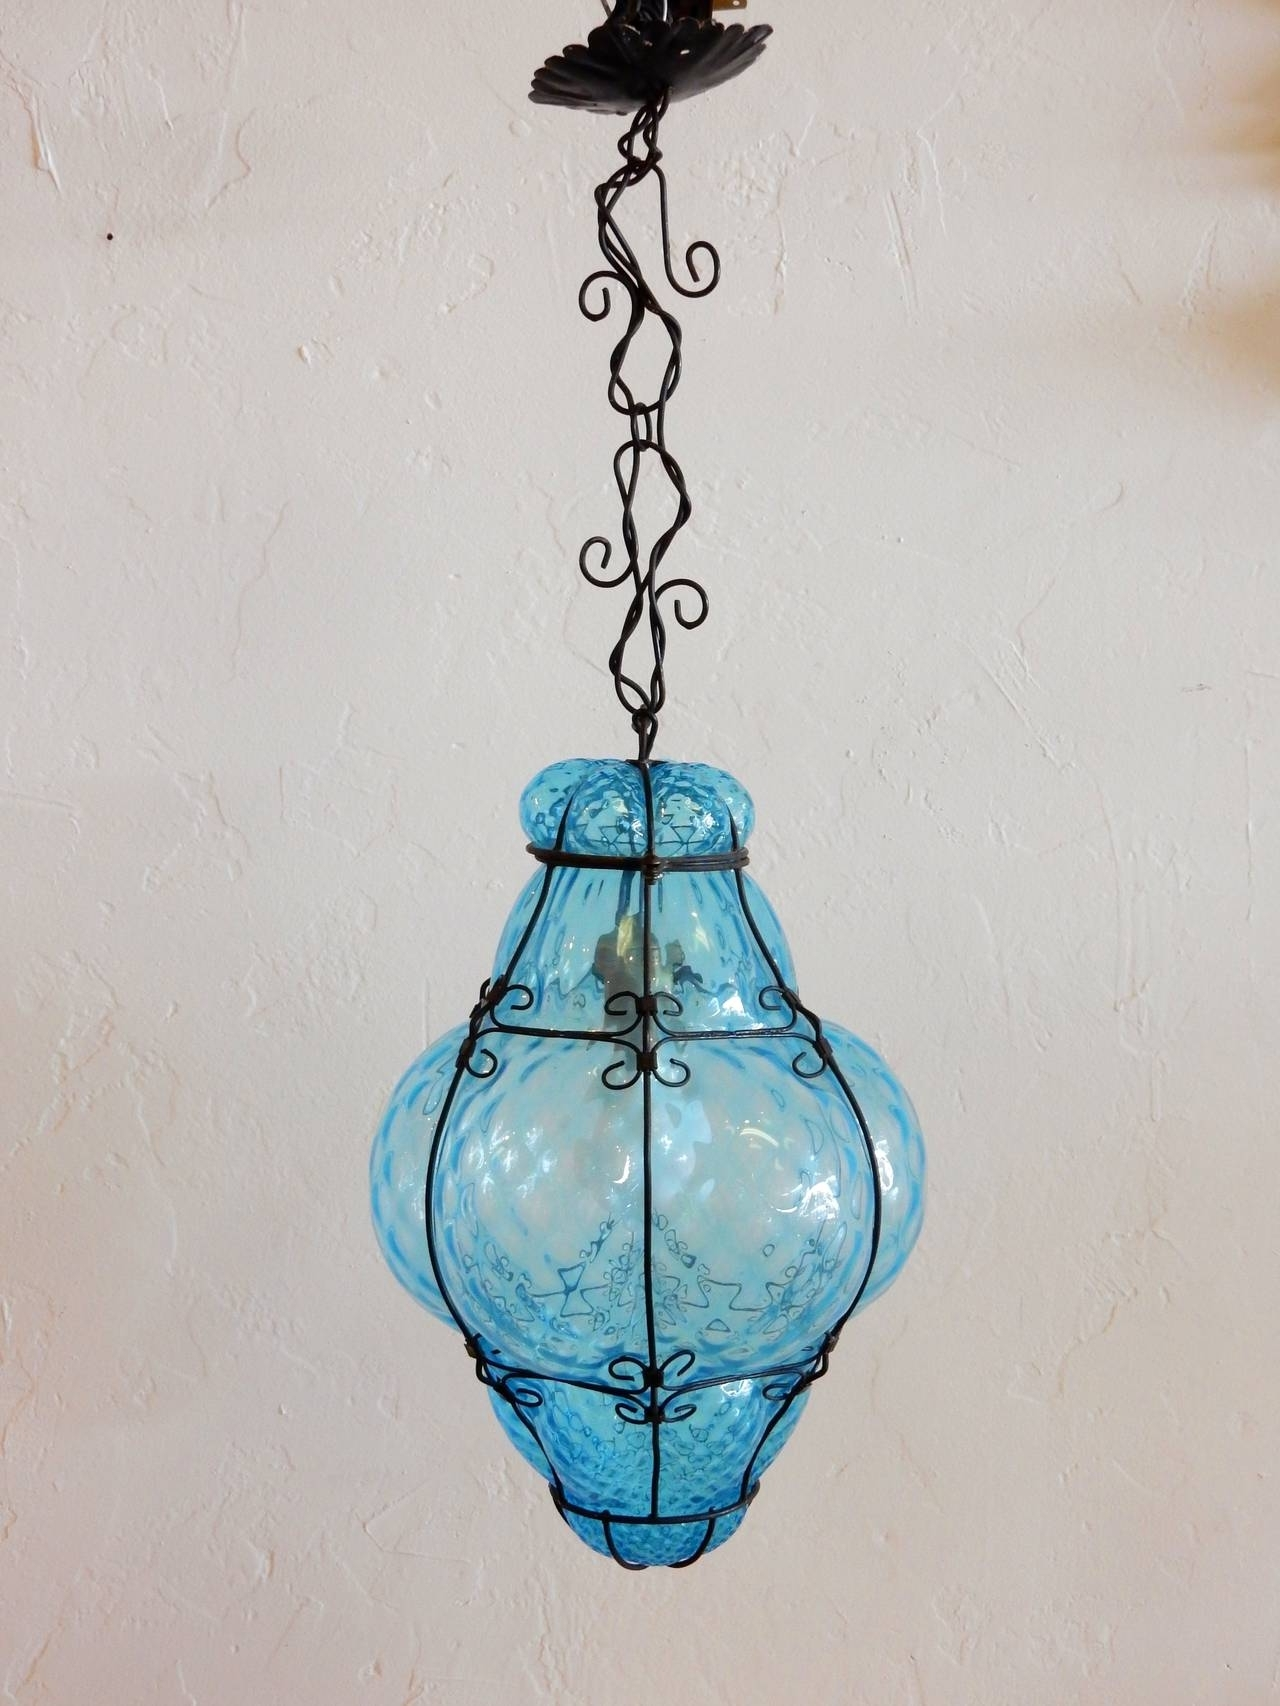 Well Liked Italian Cage Art Glass Pendant Lampseugso In Aqua Blue At 1Stdibs In Turquoise Blown Glass Chandeliers (View 19 of 20)